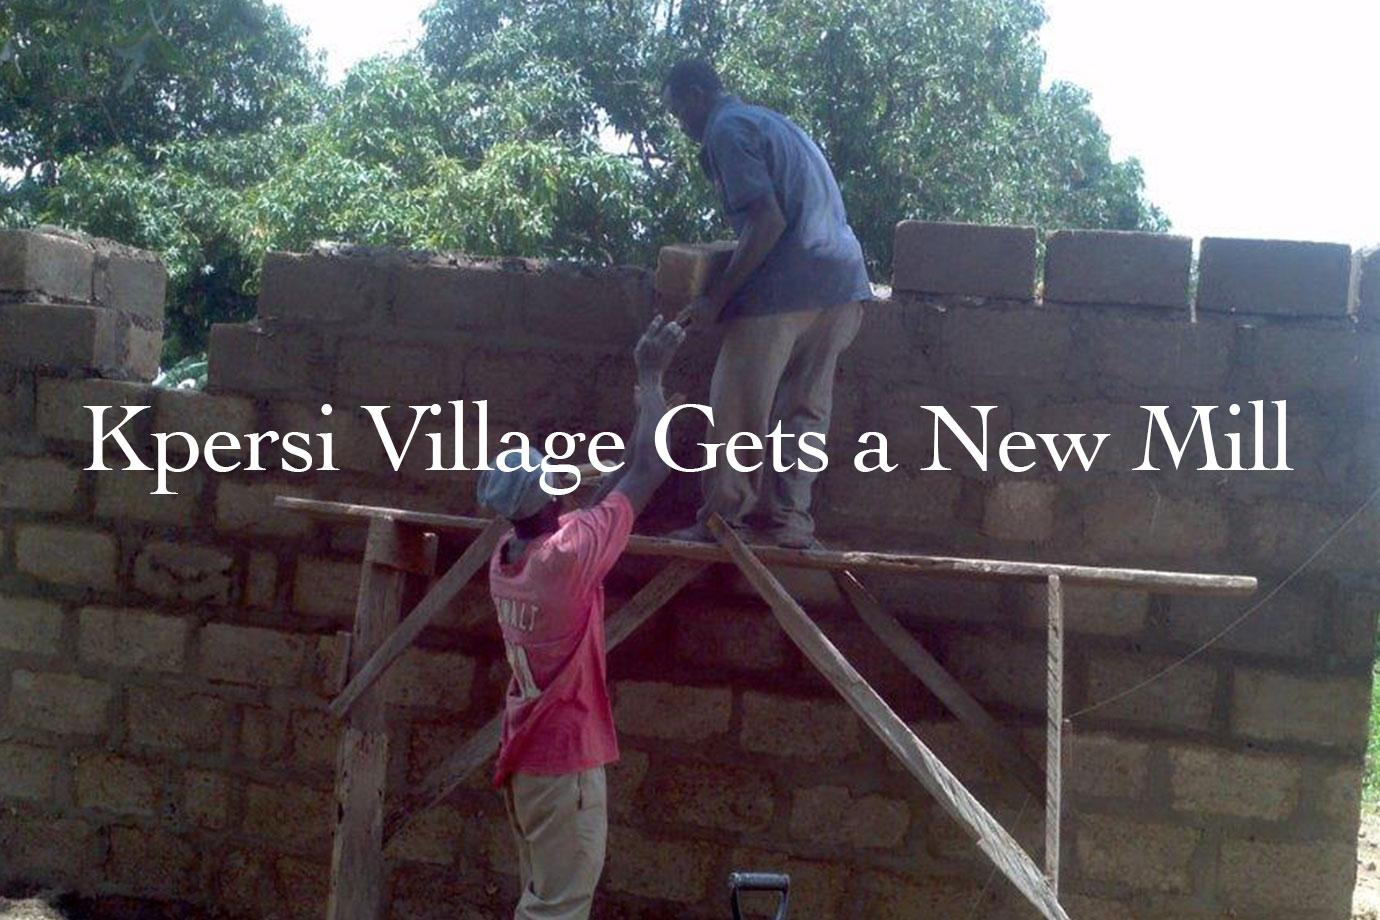 Kpersi Village Gets a New Mill